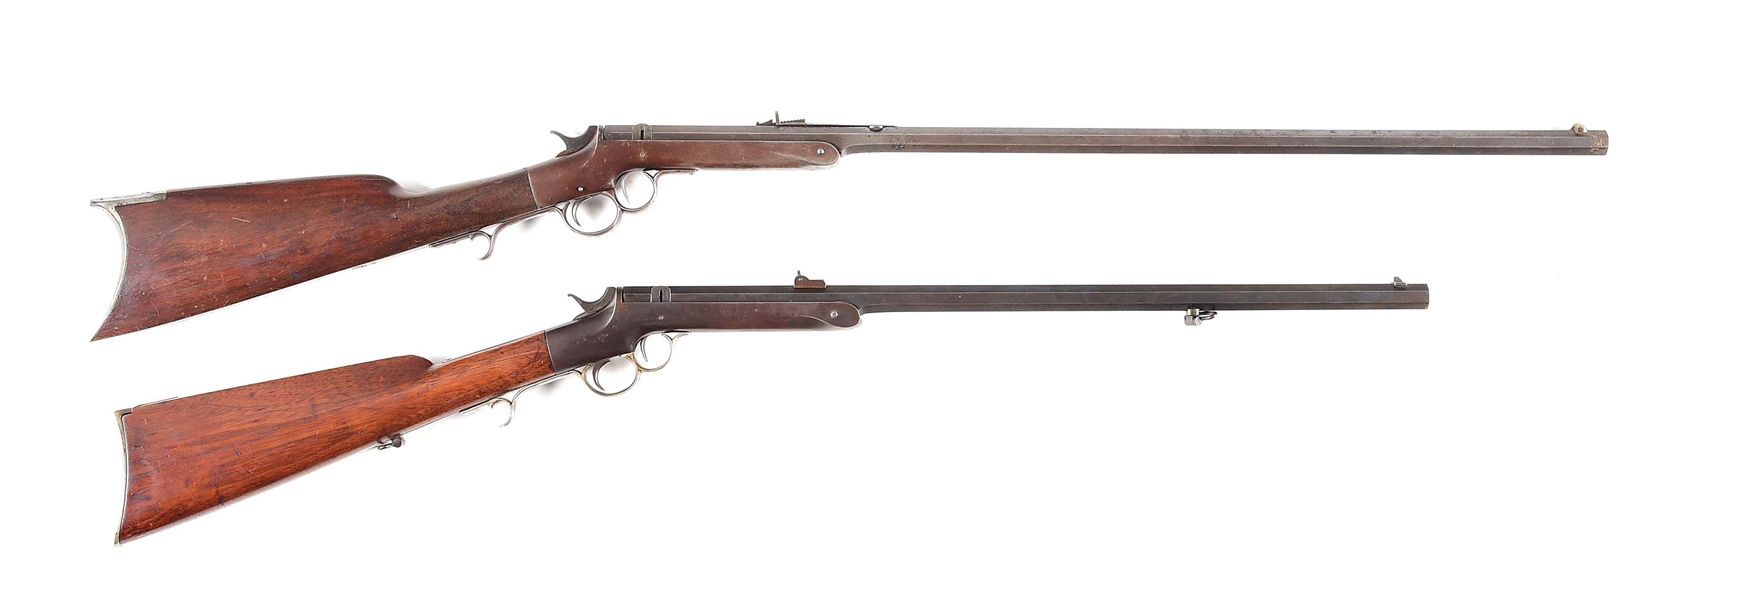 (A) LOT OF TWO: TWO FRANK WESSON SINGLE SHOT RIFLES.